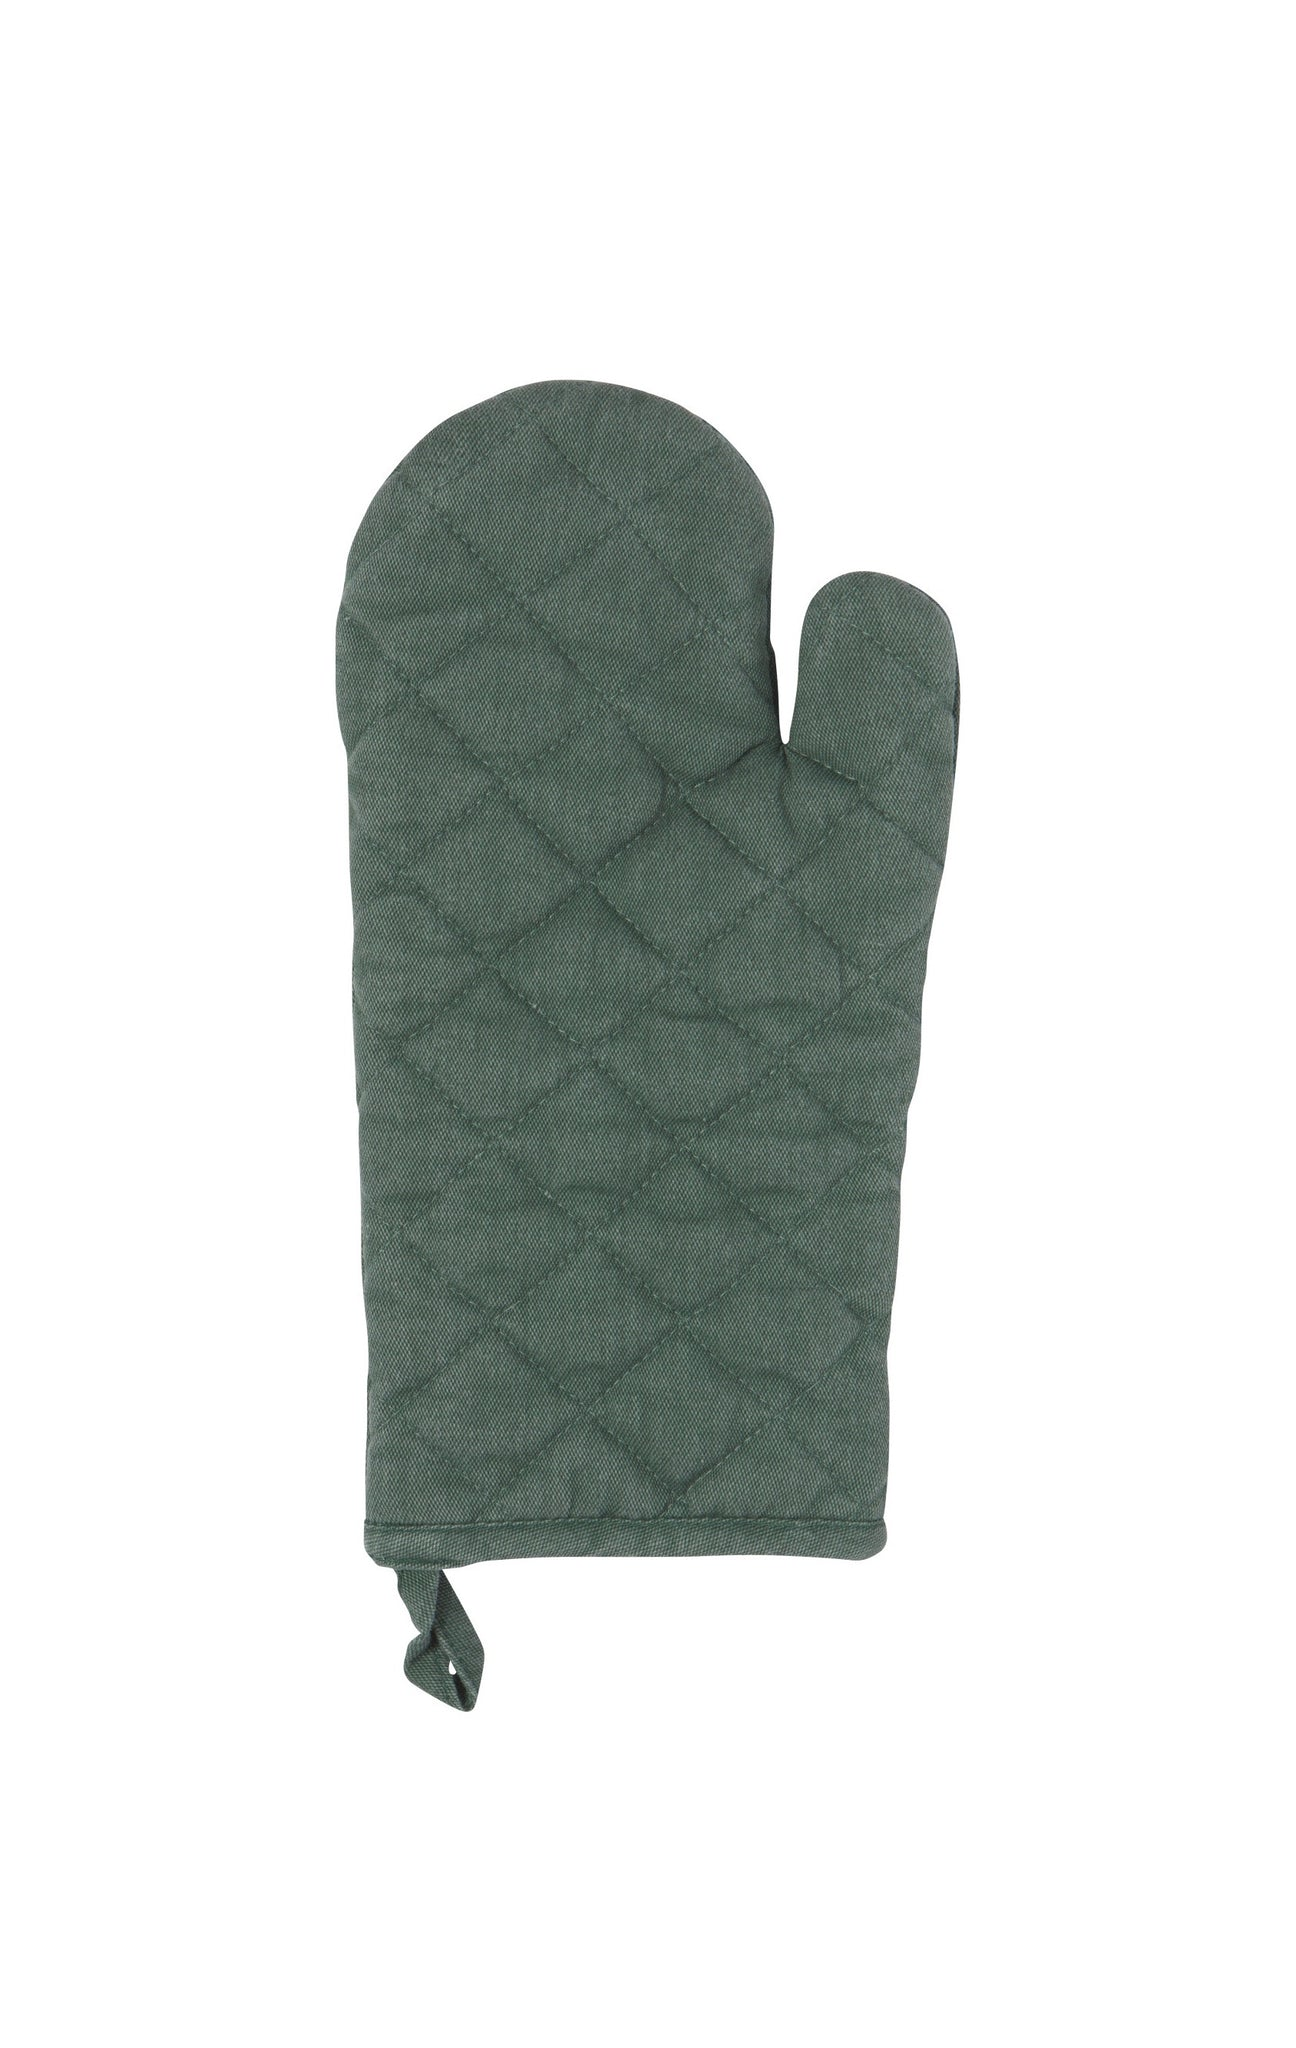 Heirloom Stonewash Oven Mitt- Jade